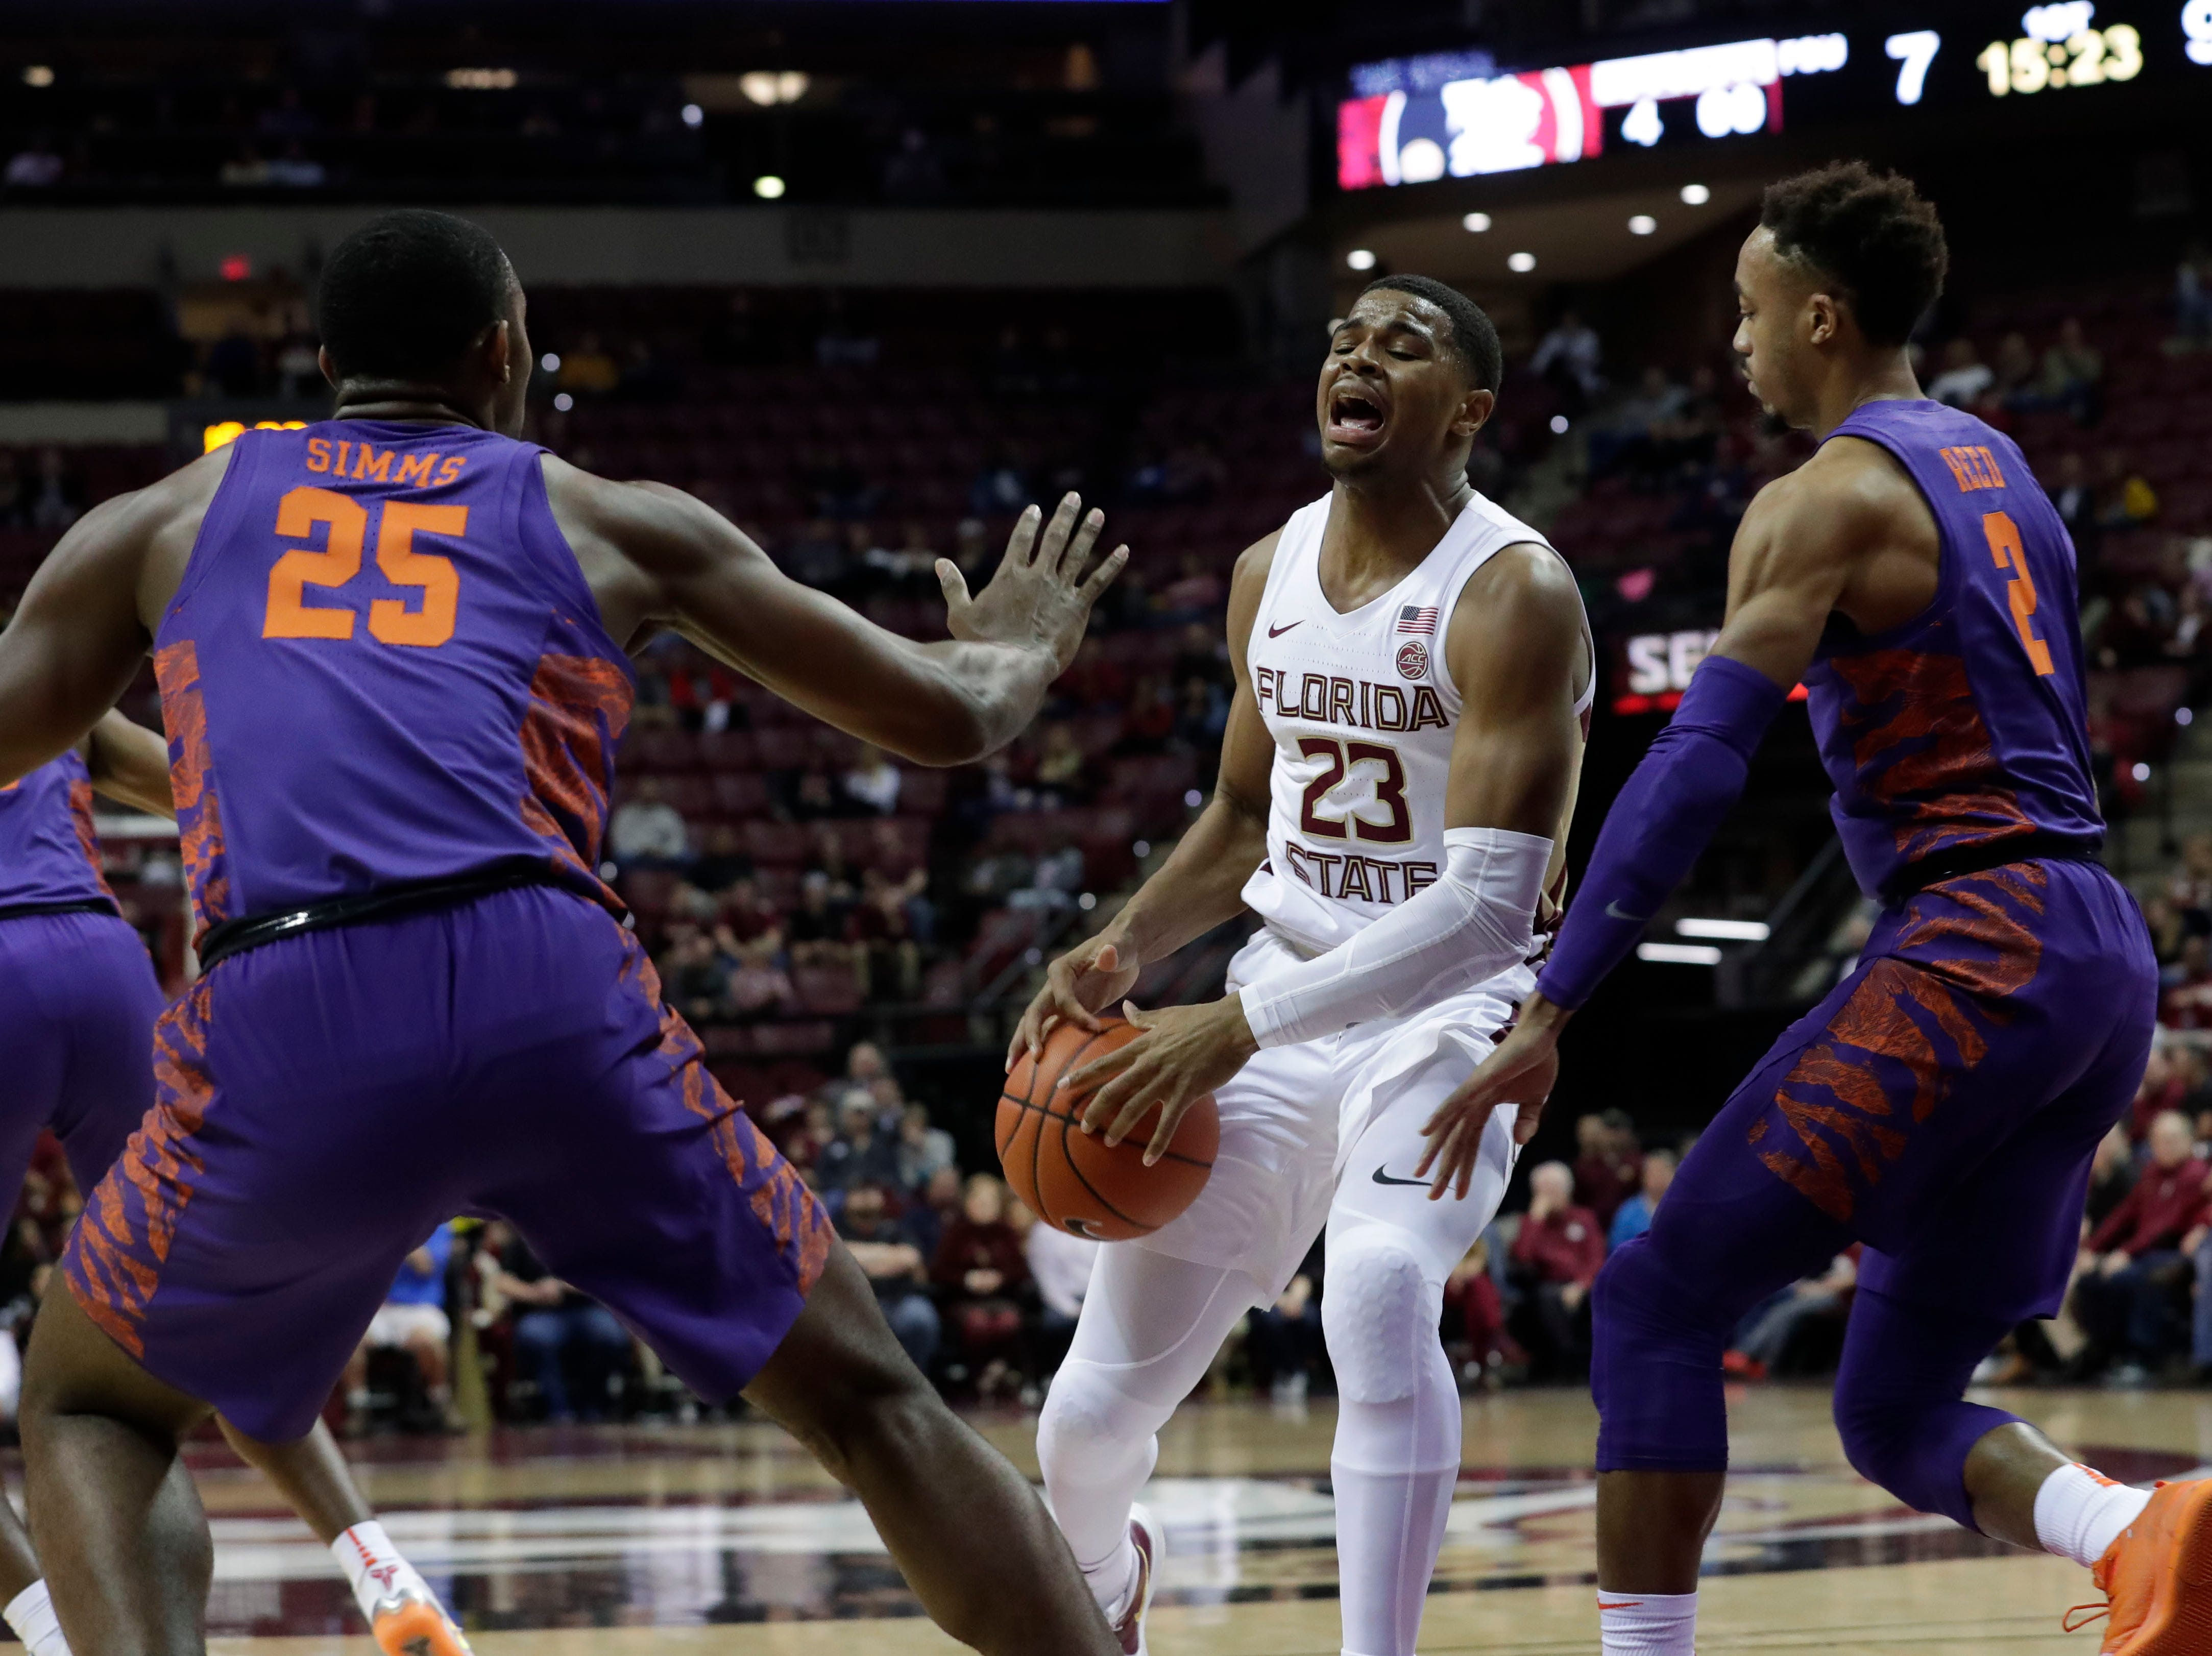 Florida State Seminoles guard M.J. Walker (23) tries to keep ahold of the ball as he fights his way through Clemson Tigers forward Aamir Simms (25) and Clemson Tigers guard Marcquise Reed (2). The Florida State Seminoles face off against the Clemson Tigers at the Tucker Civic Center, Tuesday, Jan. 22, 2019.